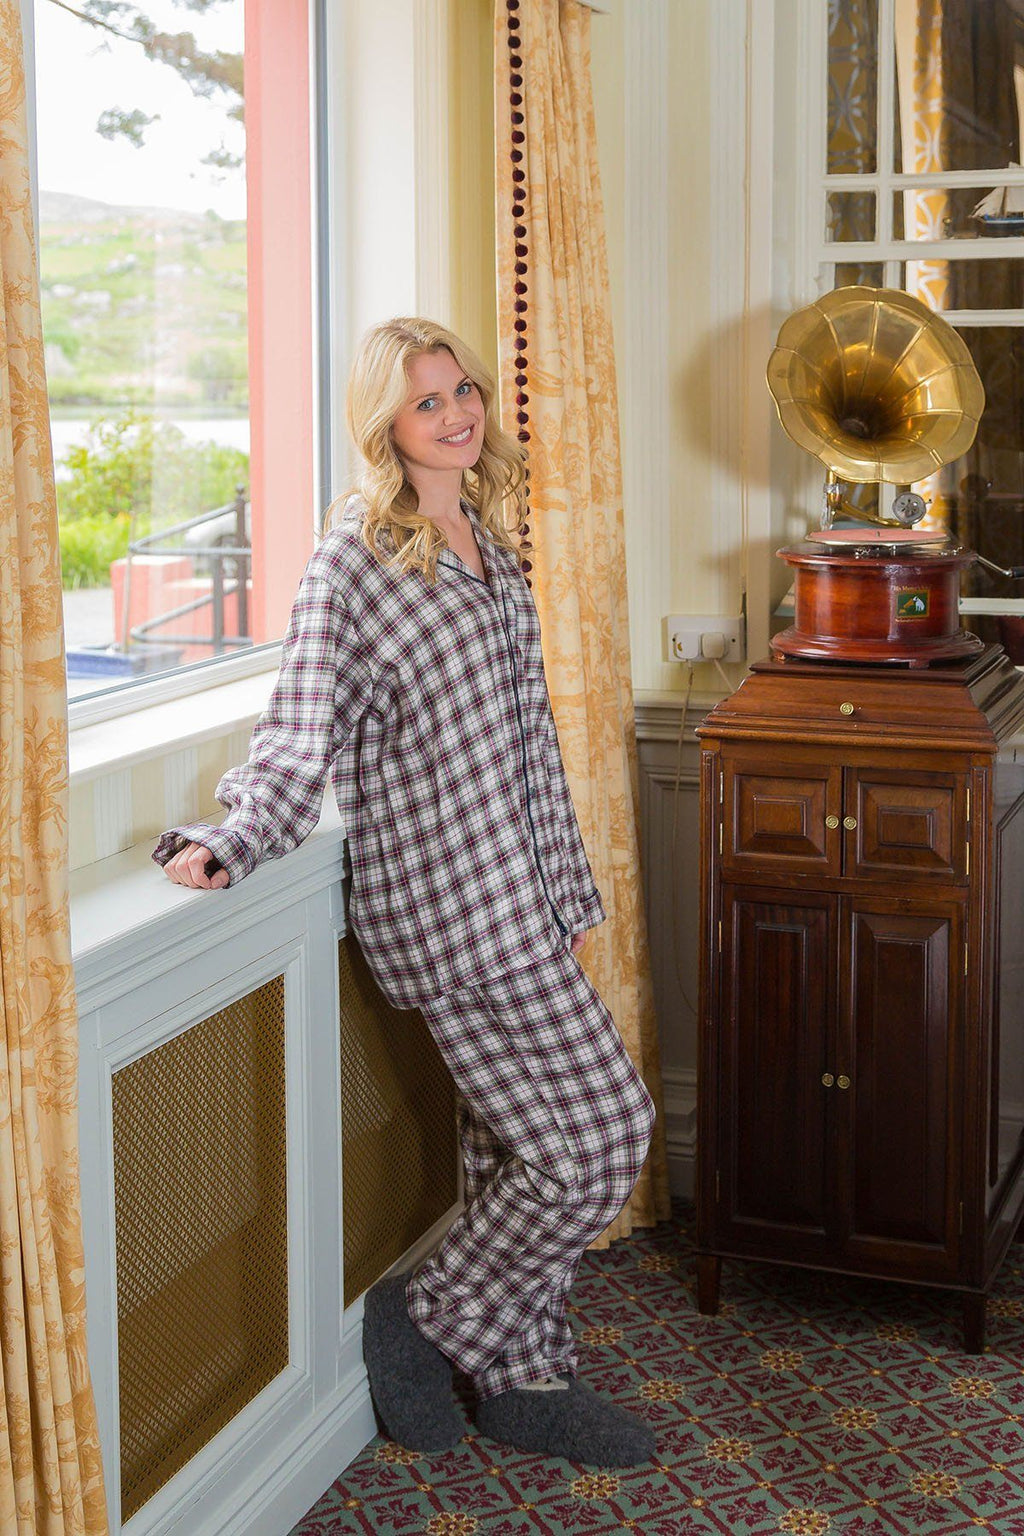 Pyjamas Lee Valley Flannel Ladies - LV7 Maroon Check Sleepwear Lee Valley Ireland